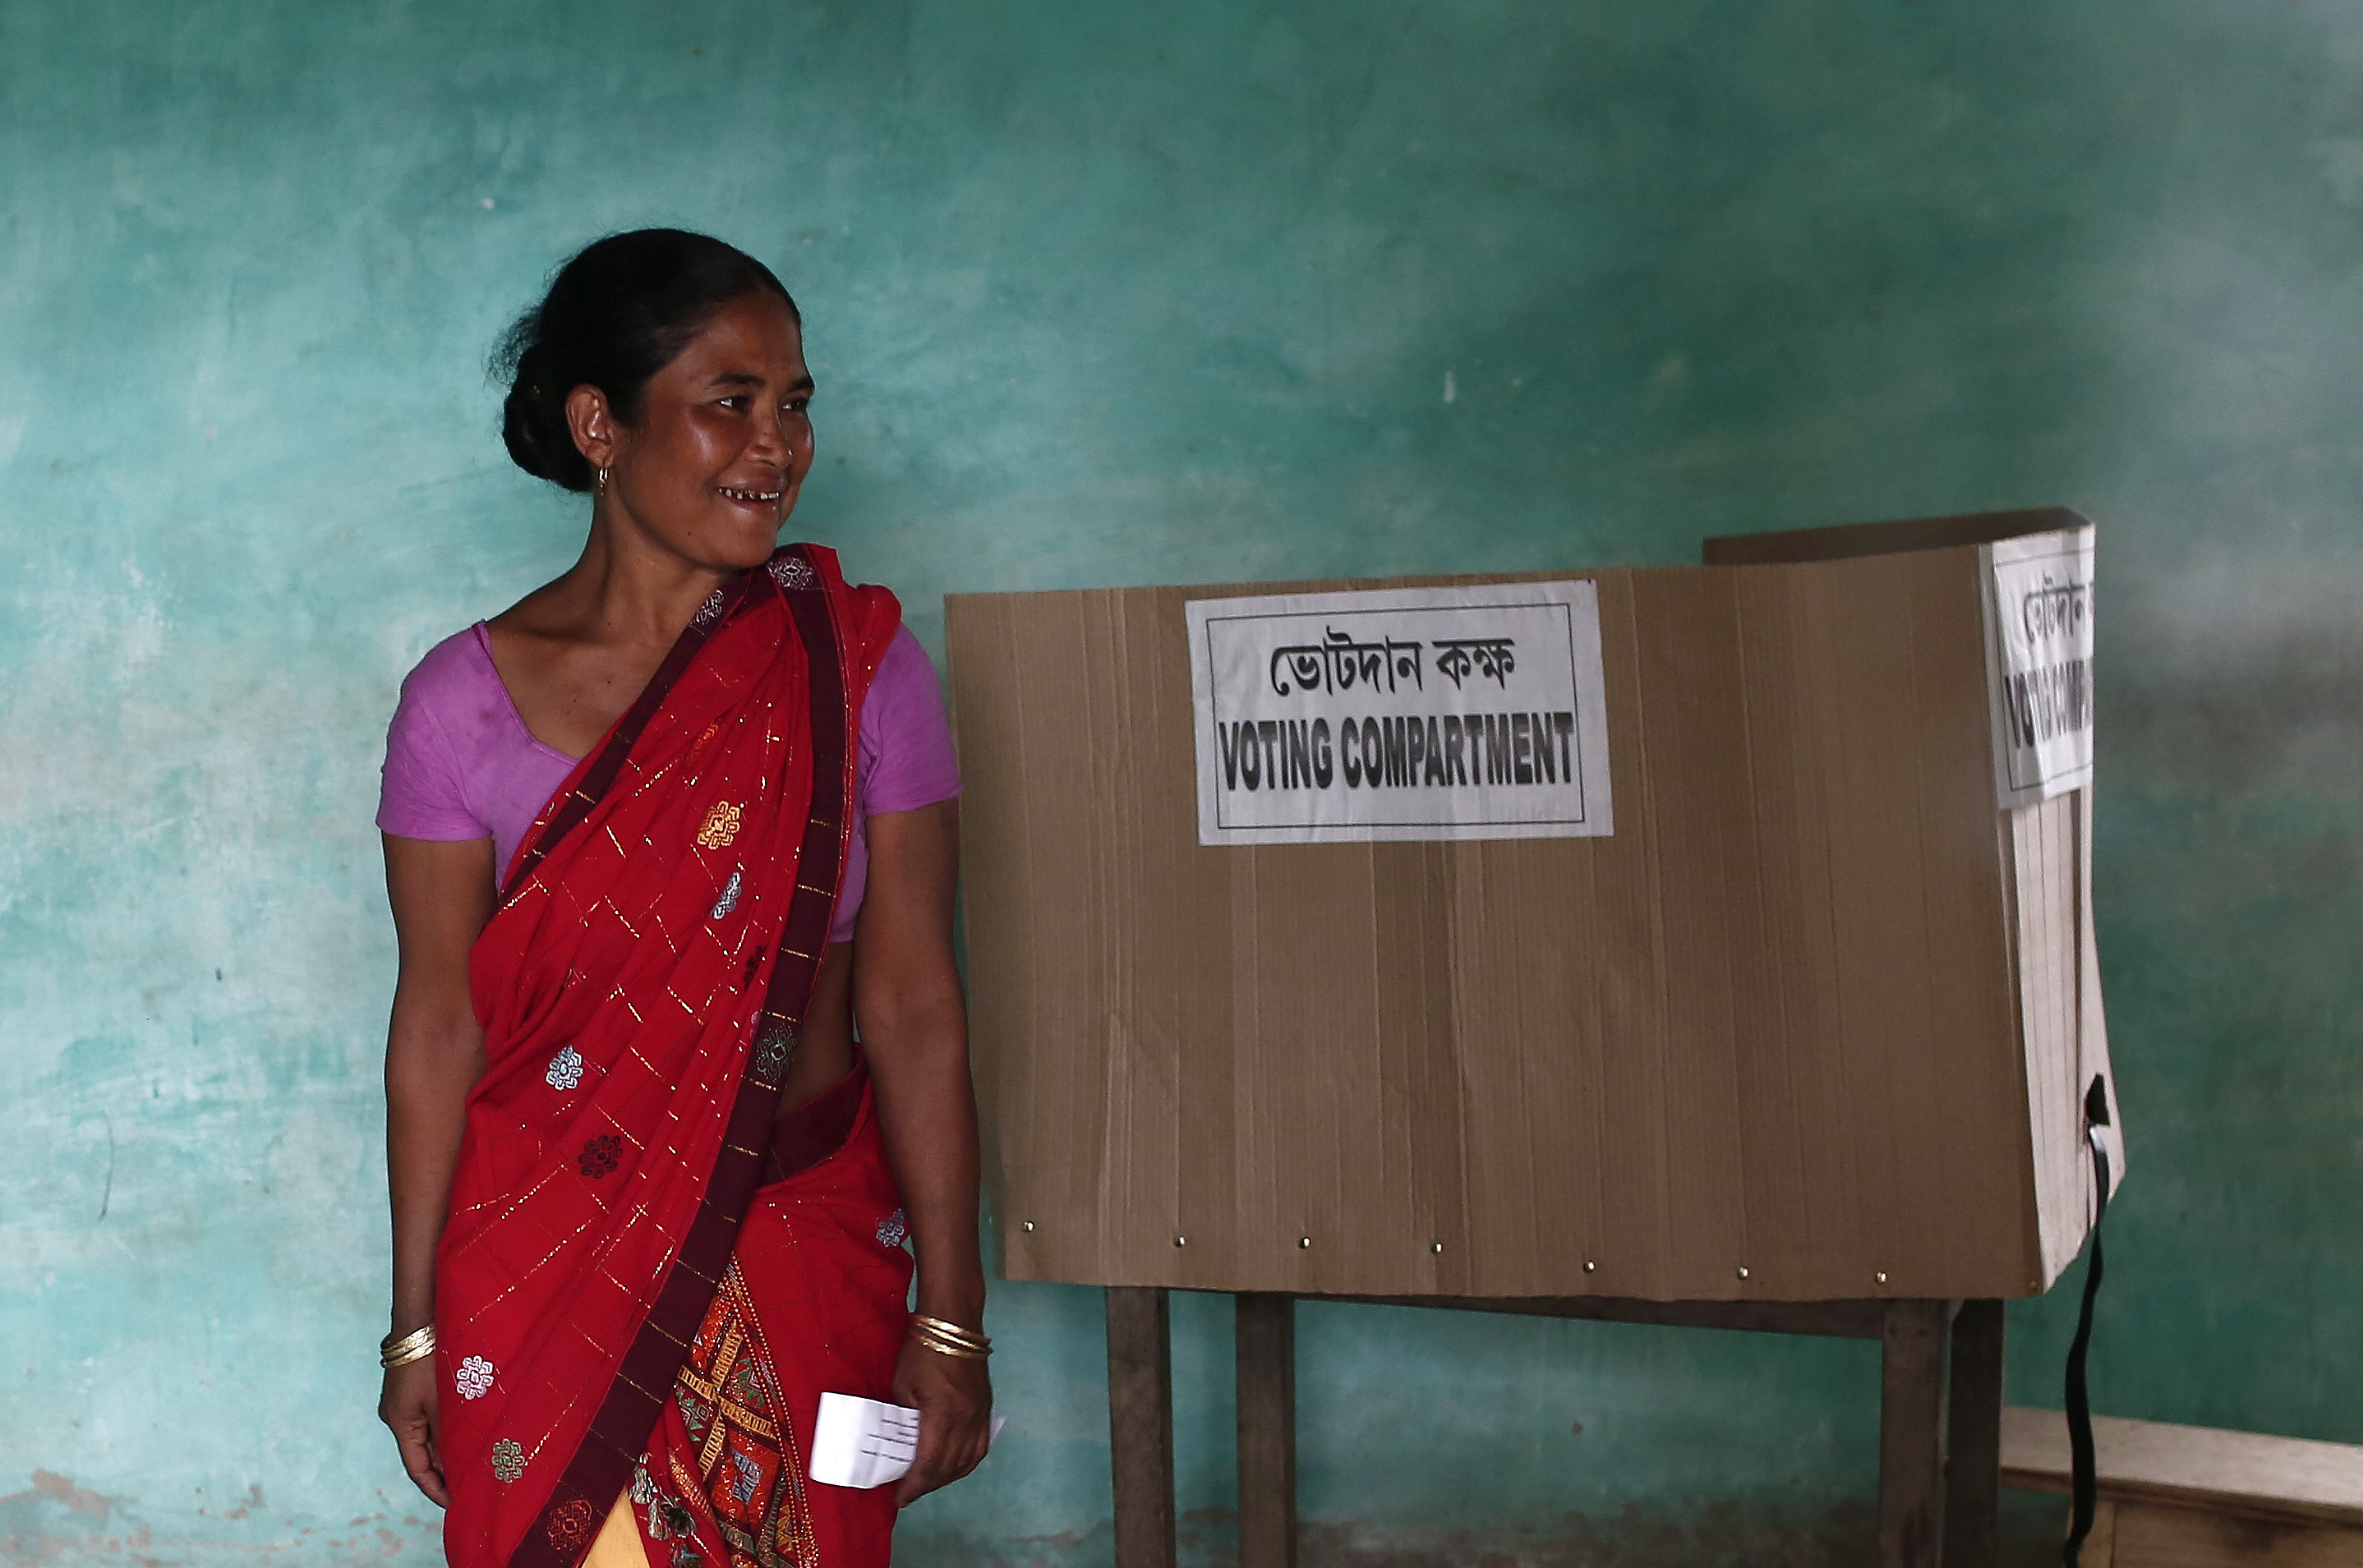 A woman smiles after casting her vote at a polling station in Majuli, a large river island in the Brahmaputra river, Jorhat district, in the northeastern Indian state of Assam April 7, 2014. The first electors cast their votes in the world's biggest election on Monday with Hindu nationalist opposition candidate Narendra Modi seen holding a strong lead on promises of economic revival and jobs but likely to fall short of a majority. REUTERS/Adnan Abidi (INDIA - Tags: POLITICS ELECTIONS) - RTR3KA4Y